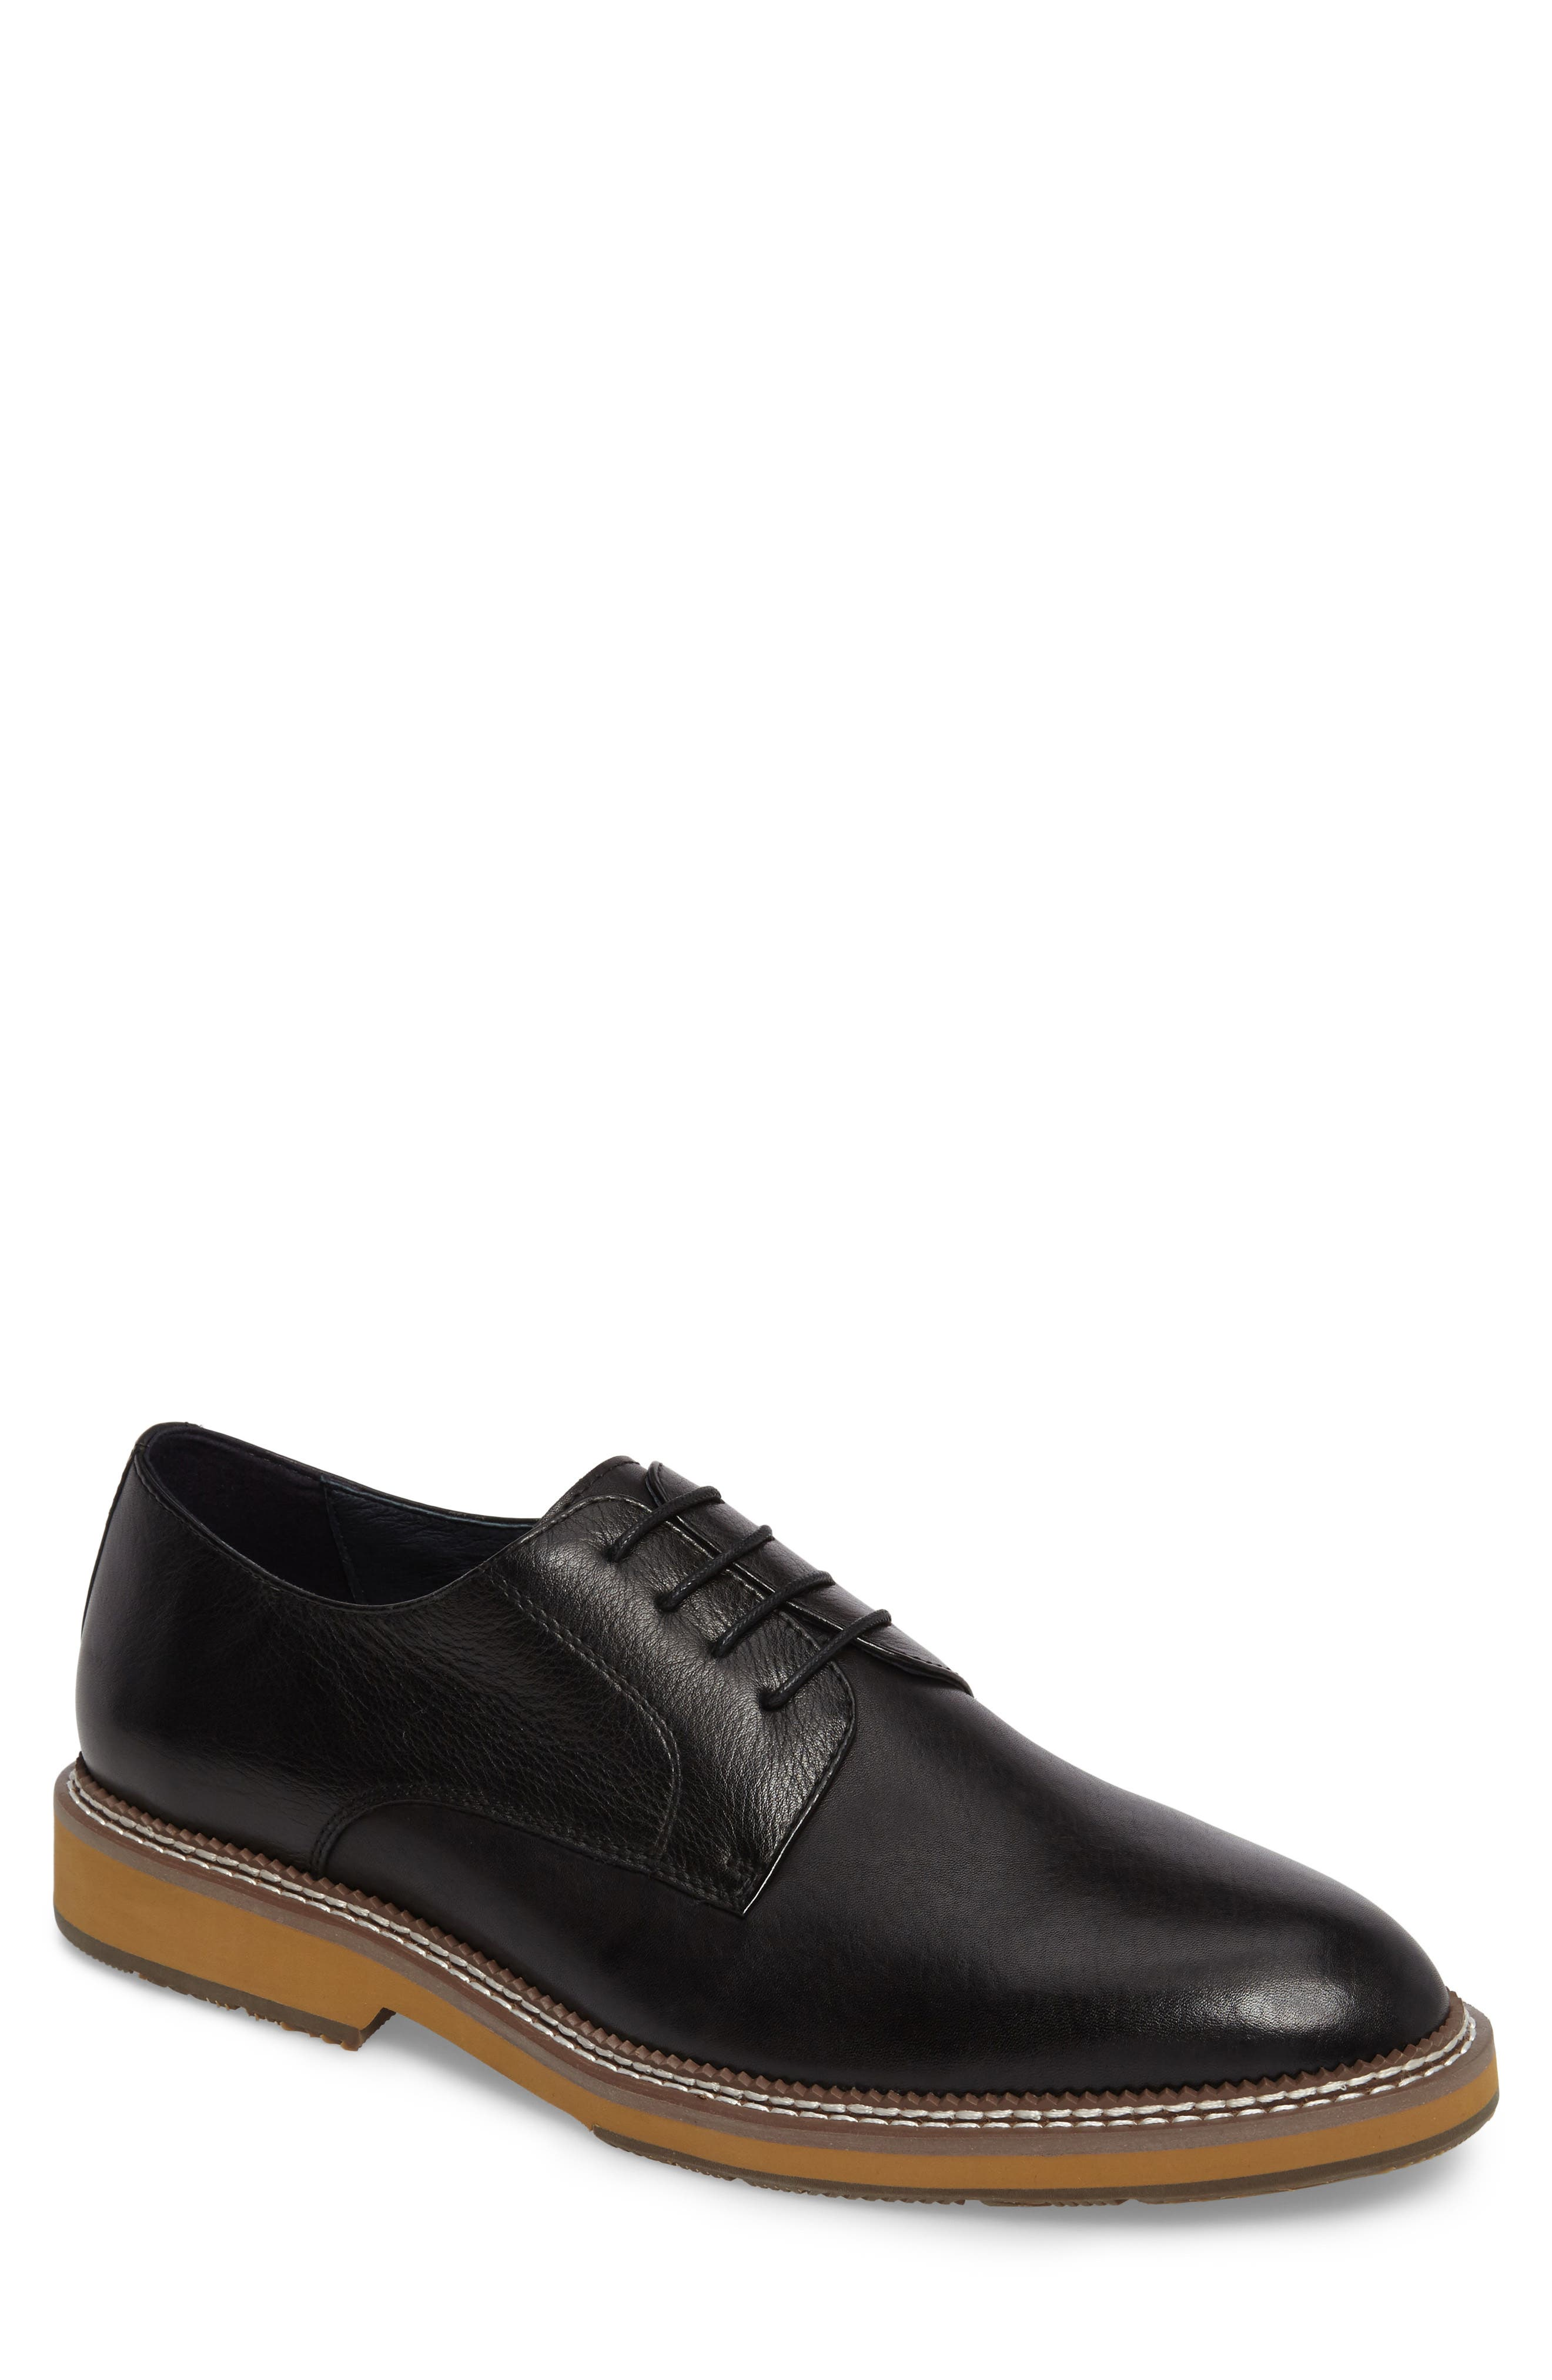 Main Image - Zanzara Fenton Plain Toe Derby (Men)